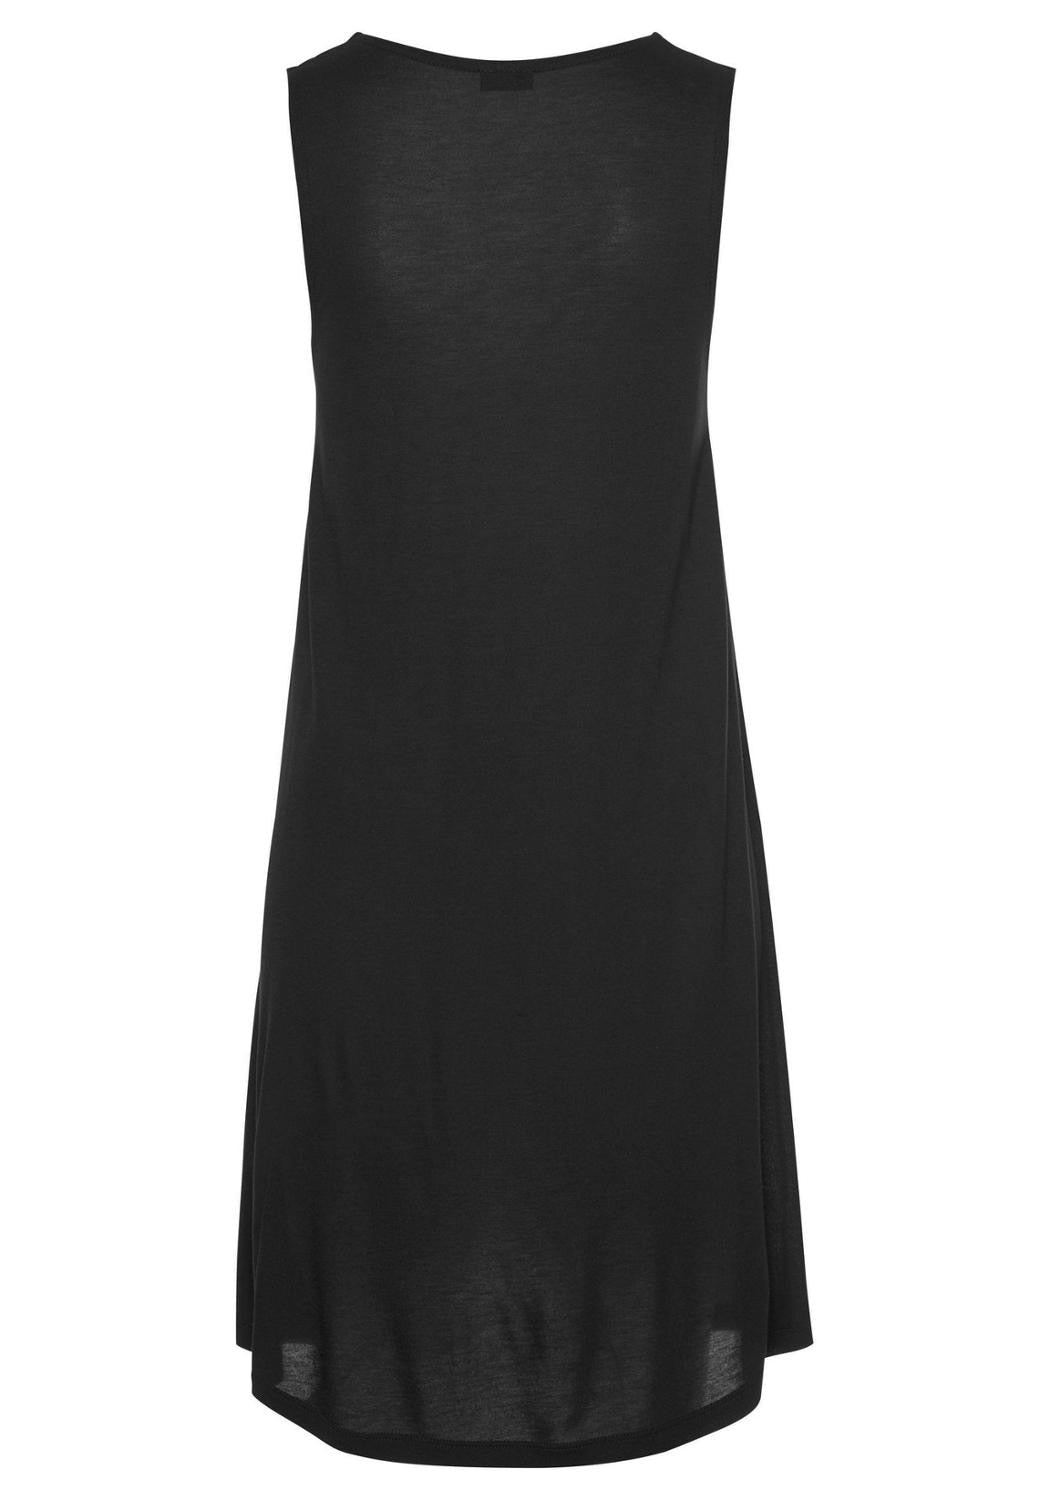 Black Beach Style Keyhole Neckline Dresses Women Summer Casual Solid Hollow Out O-Neck Tank Sleeveless A Line Sexy Mini Dress